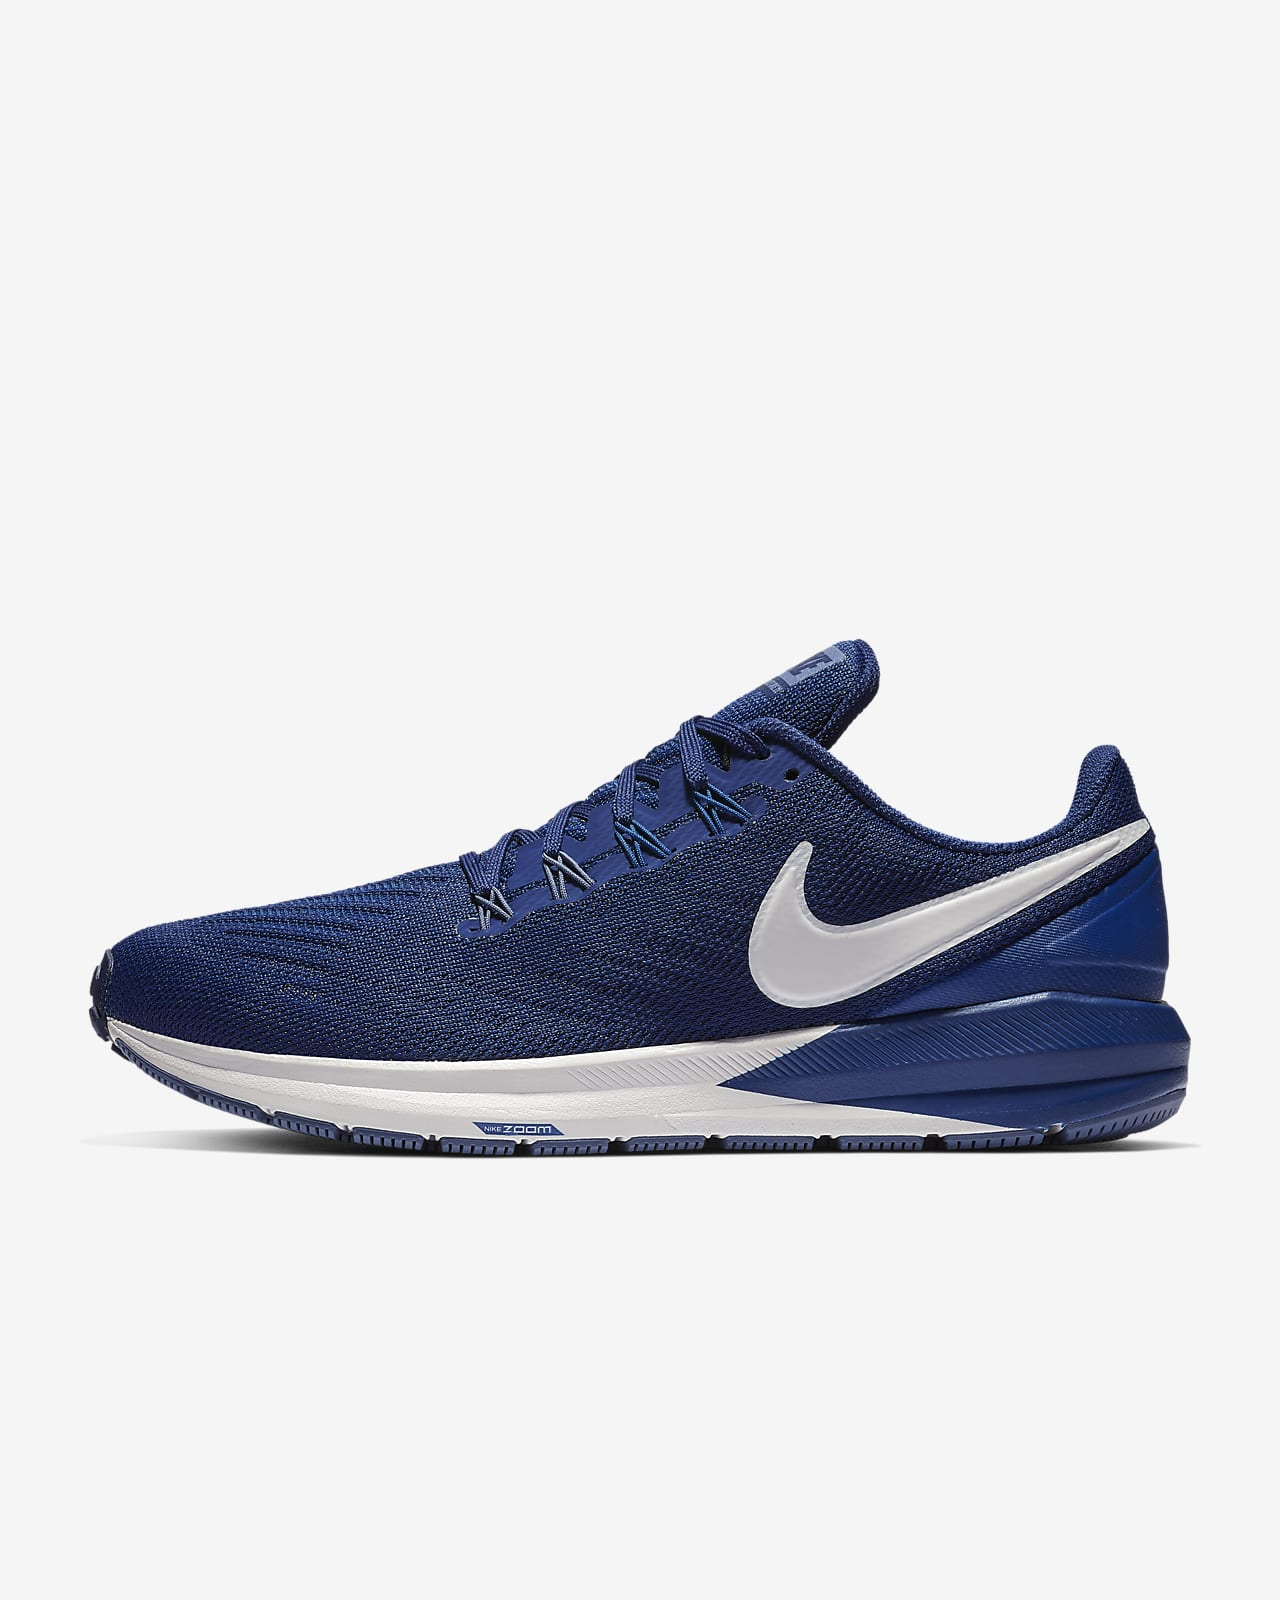 Chaussure de running Nike Air Zoom Structure 22 pour Homme (étroite)